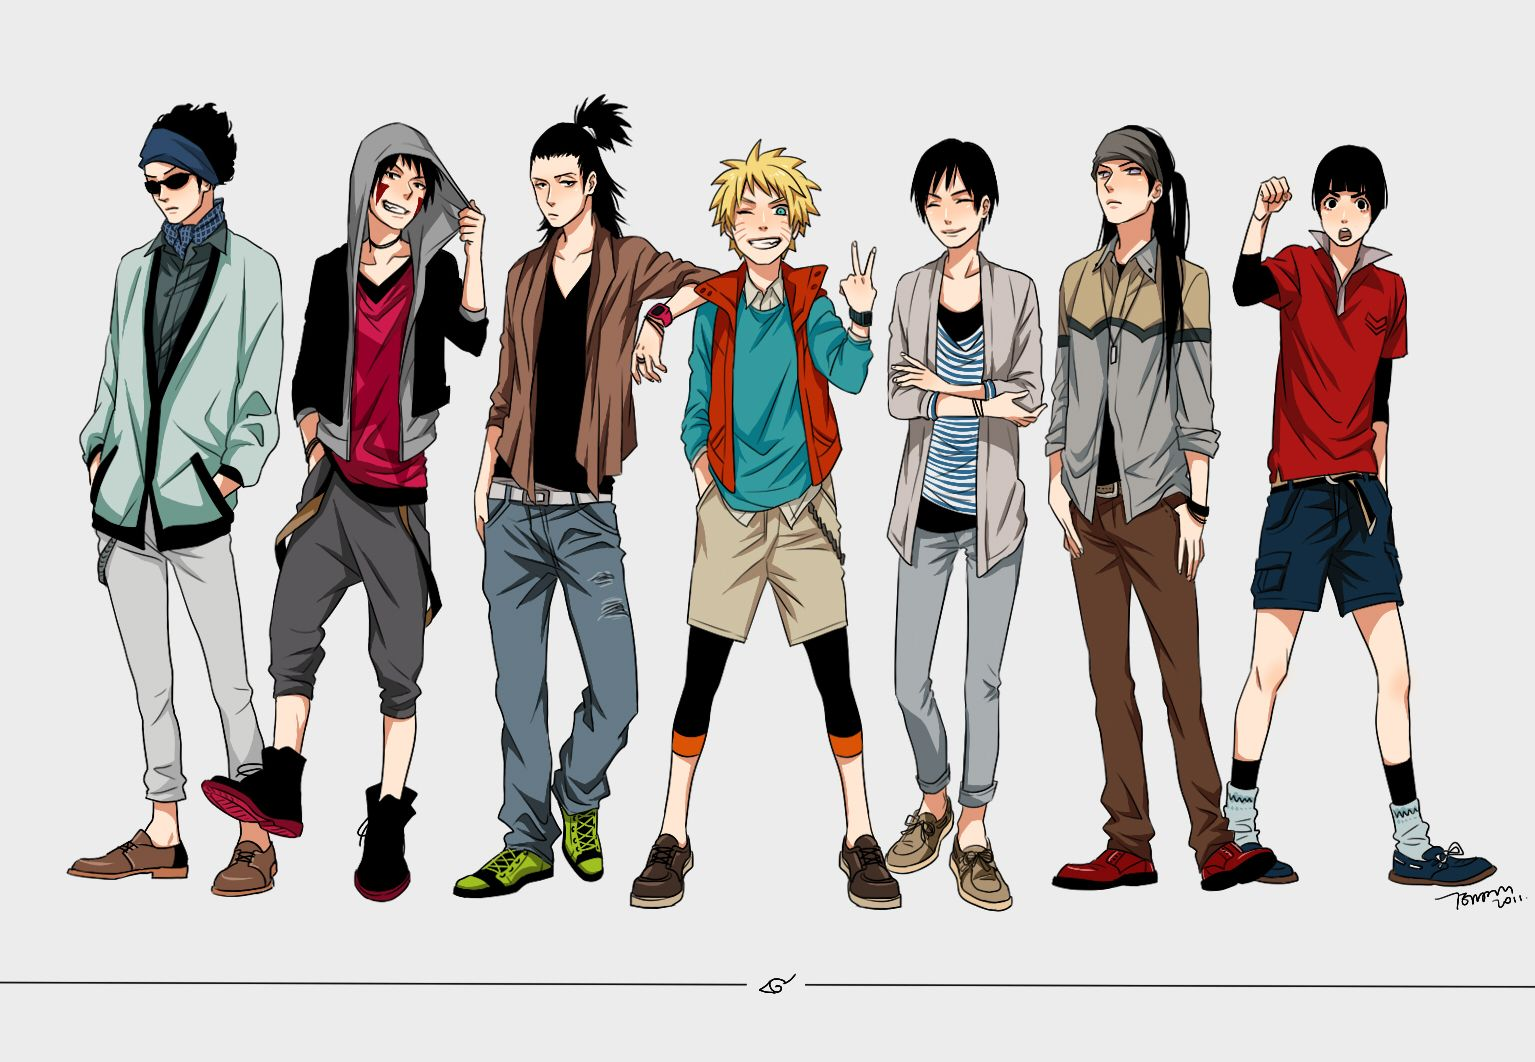 Naruto Boys In Casual And Modern Clothing Fashion Anime | Anime Fashion And Art Inspiration ...